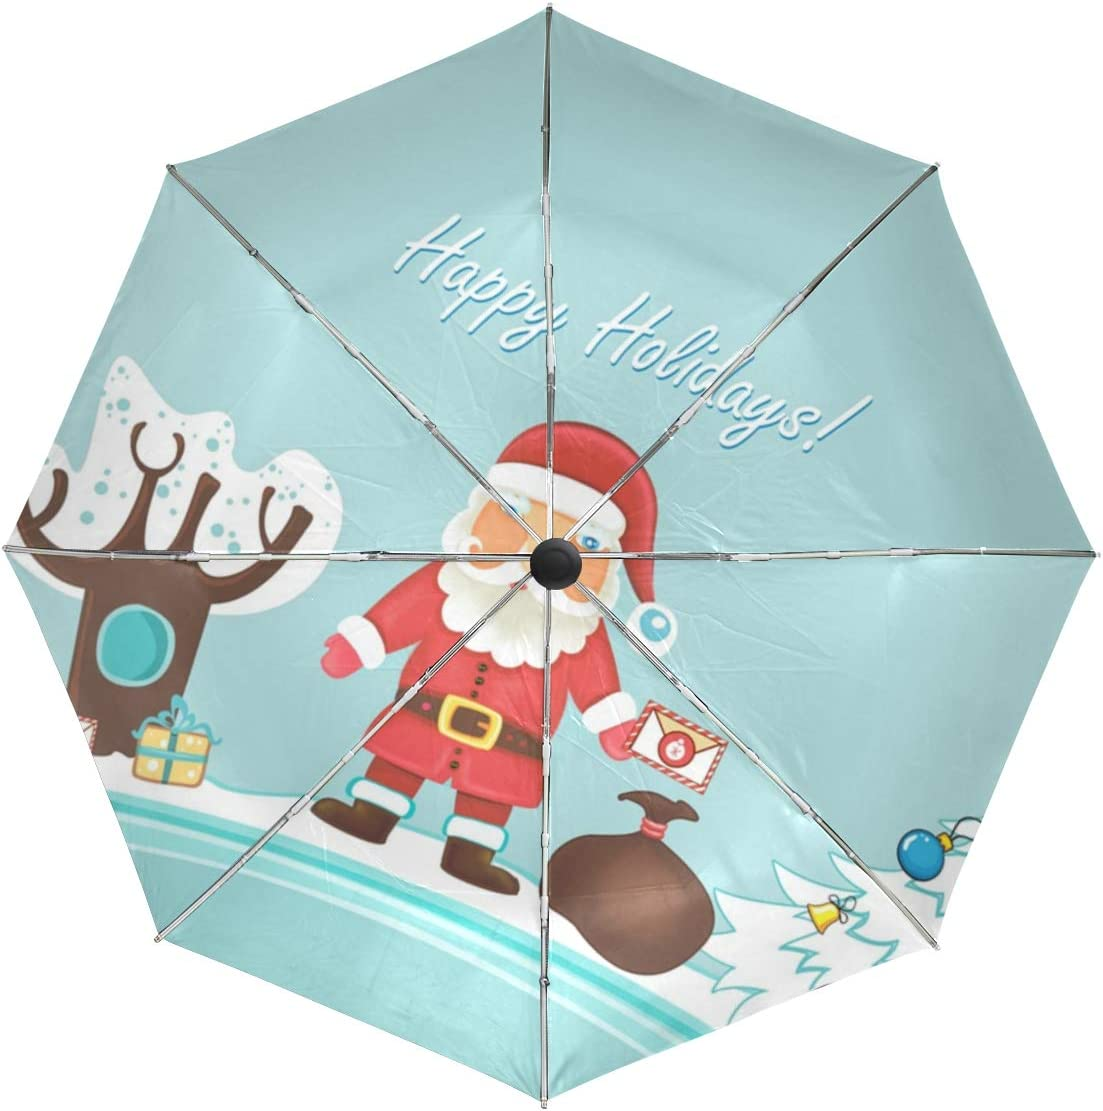 Compact Umbrella,Santa Claus Happy Holidays Automatic Folding Travel Umbrella,Windproof Reinforced Canopy Ergonomic Non-Slip Handle Auto Open//Close for One Handed Operation